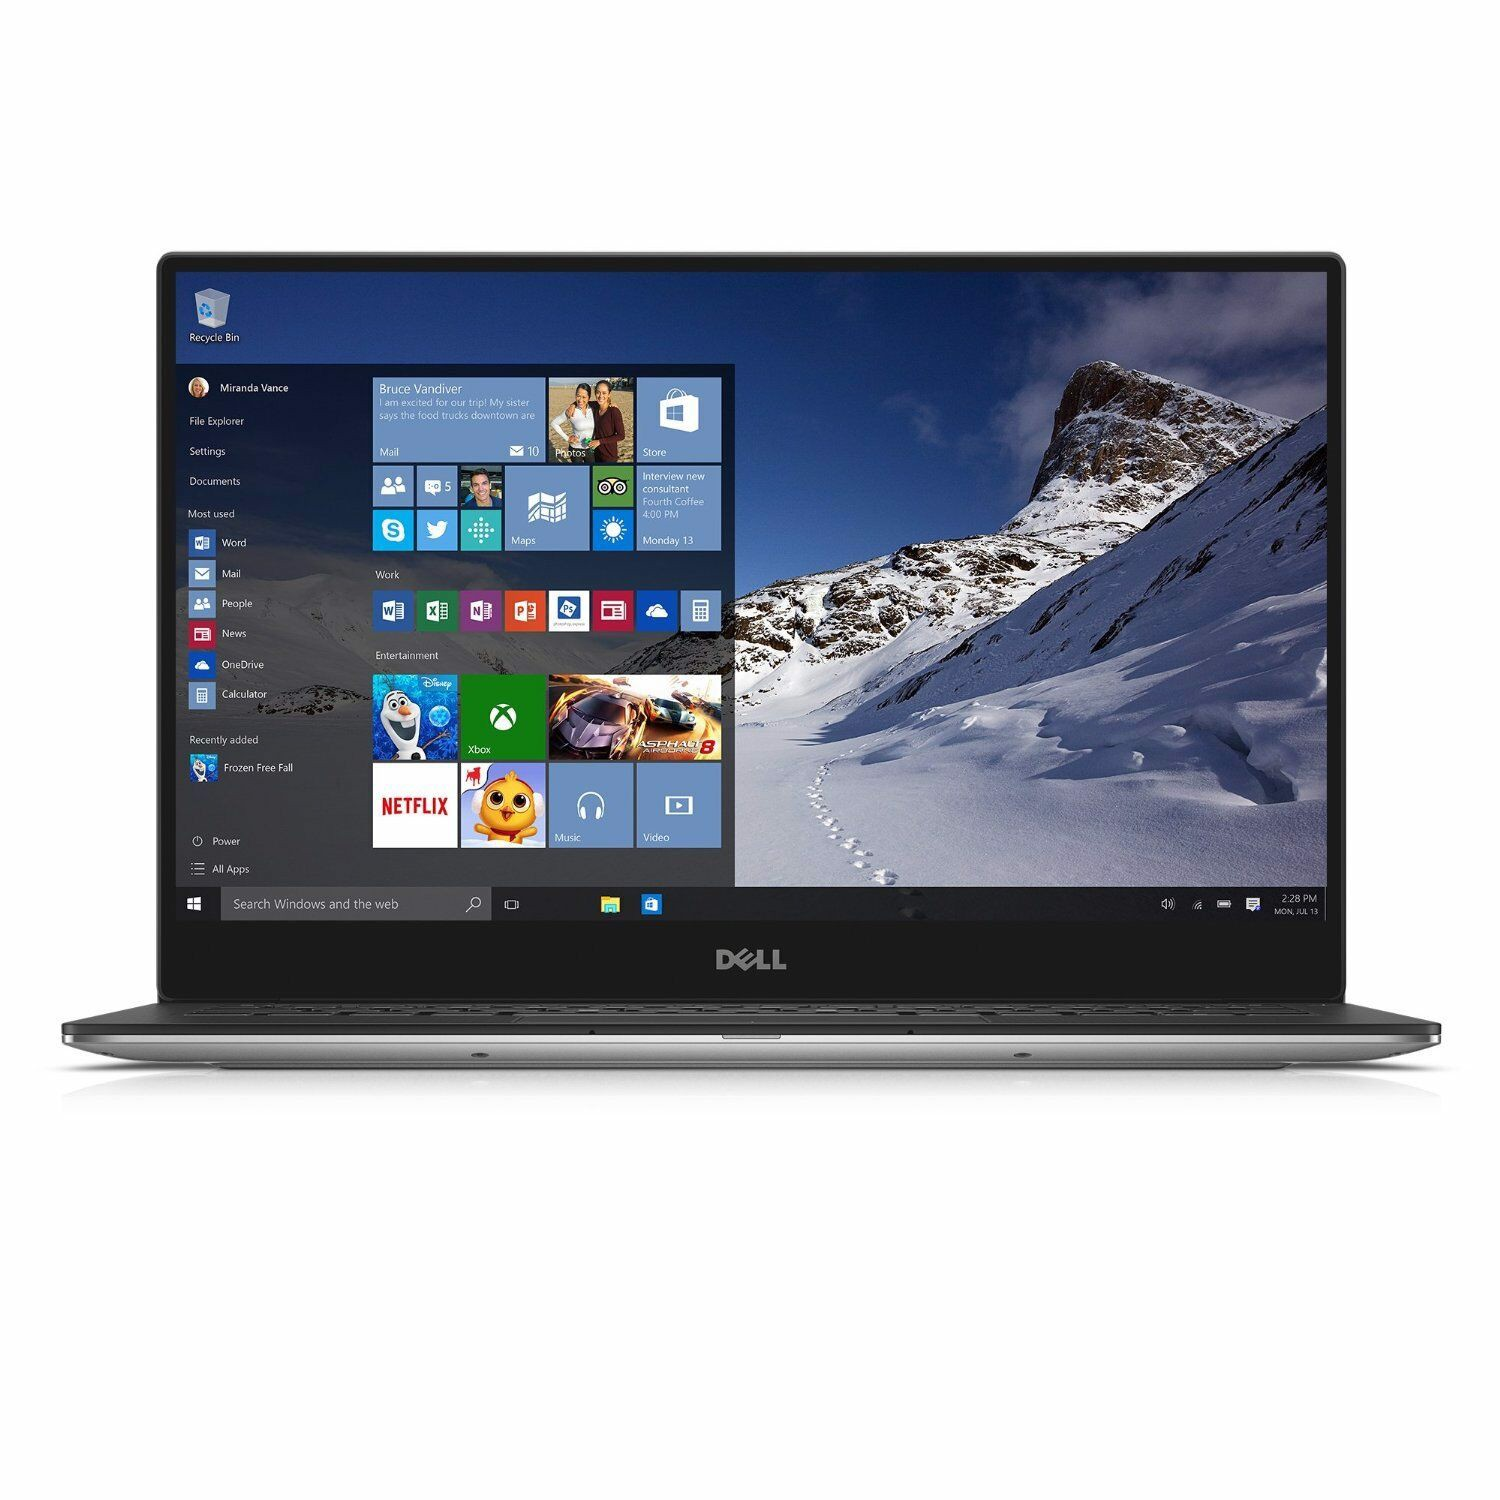 DELL XPS 9343 Core I7 8GB RAM  256GB SSD 3K TOUCH